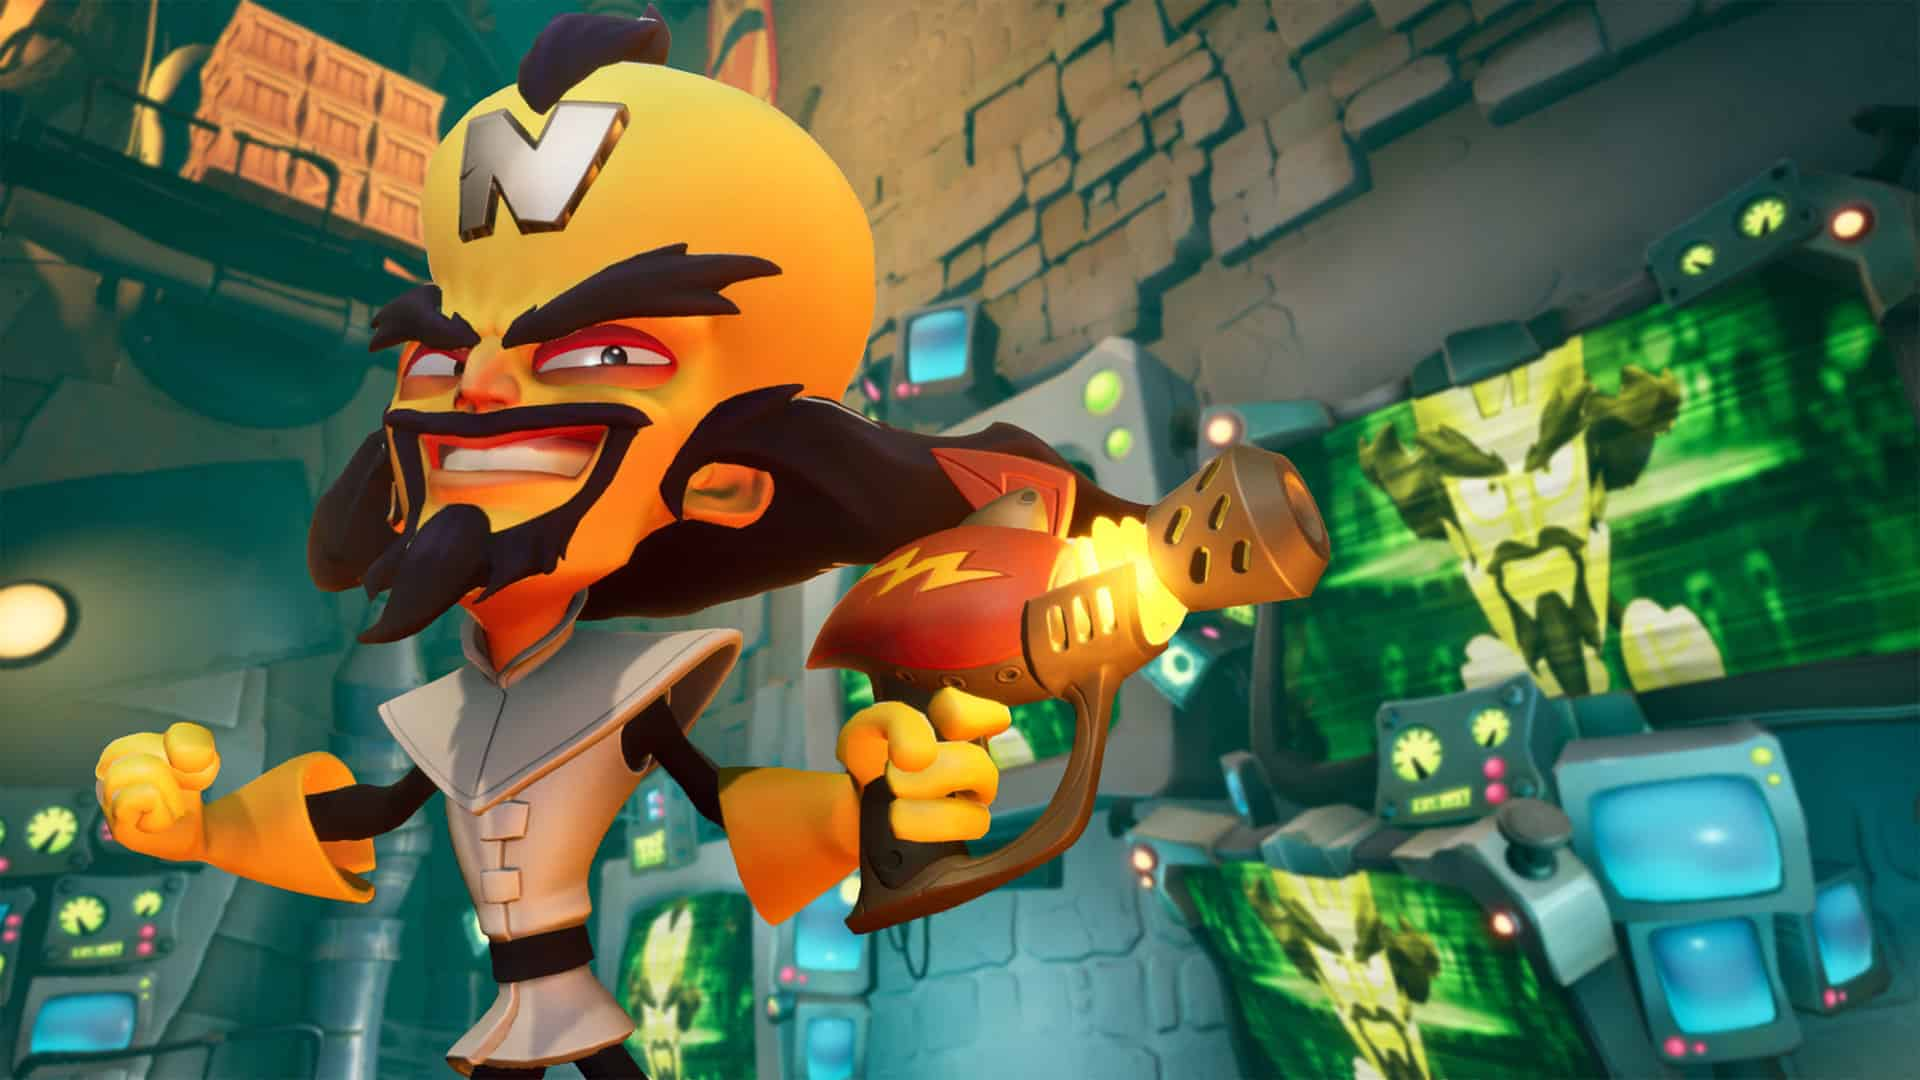 Toys for Bob revives Naughty Dog magic except for Neo Cortex preview Crash Bandicoot 4: It's About Time